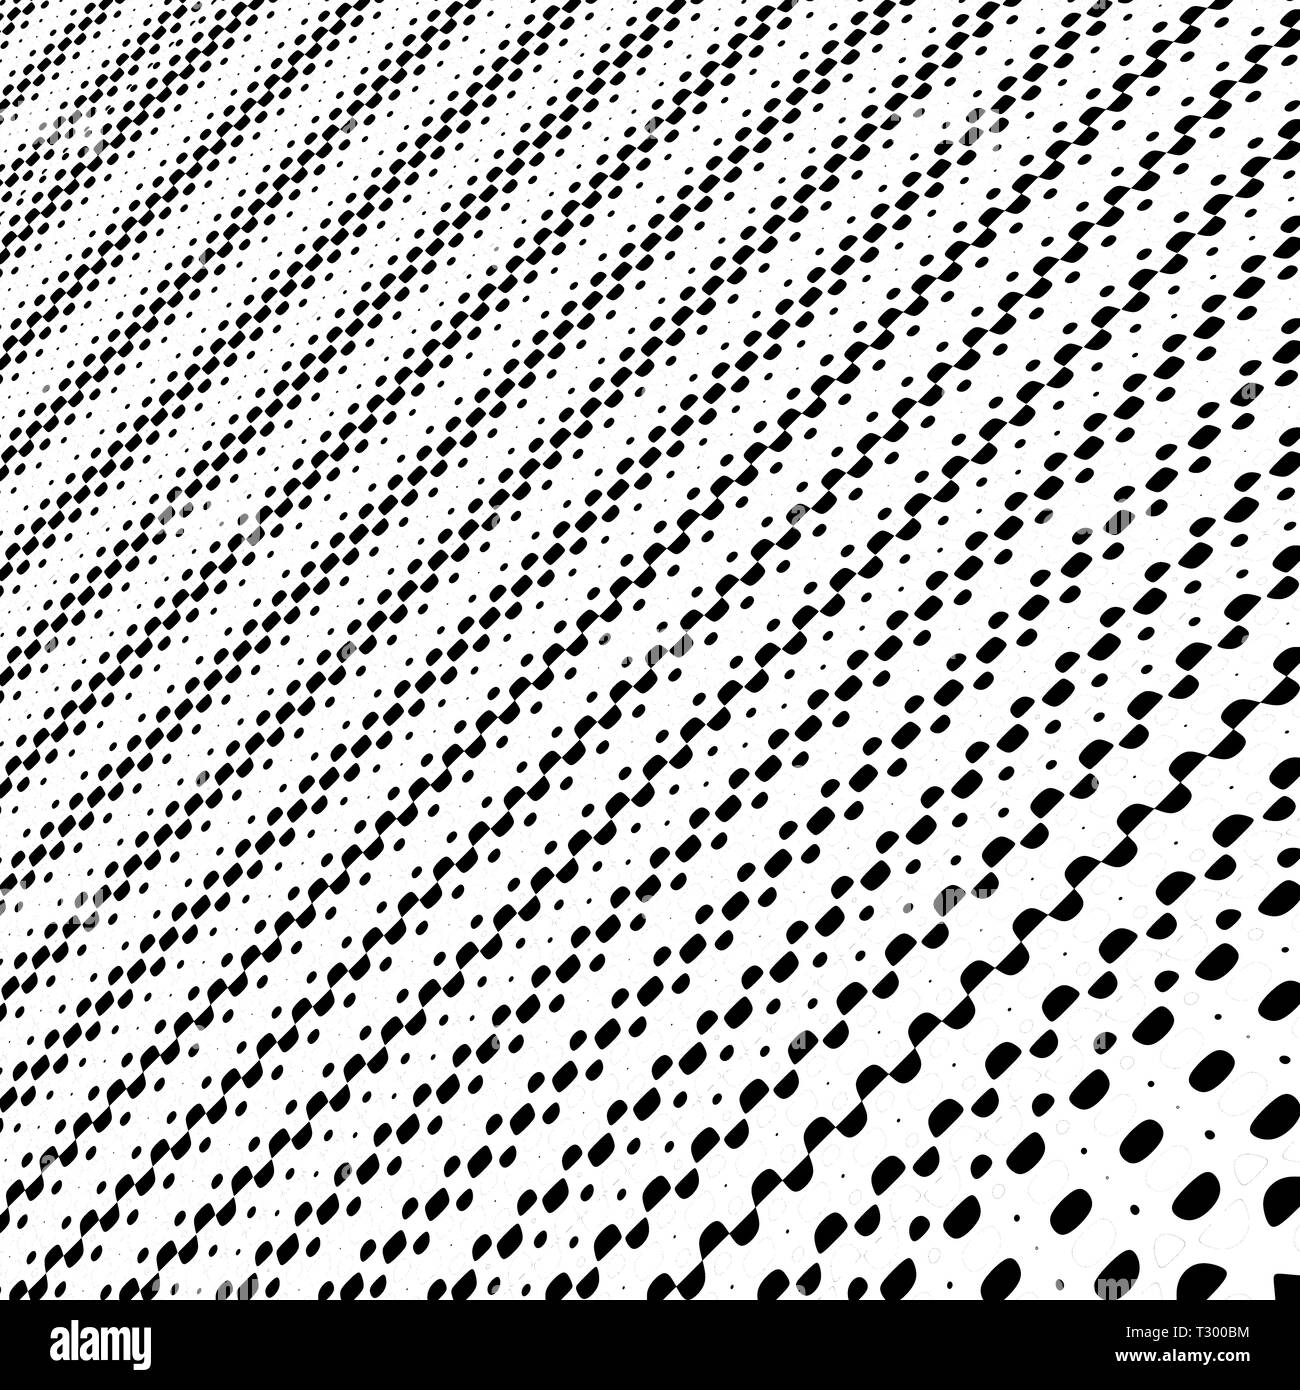 Computer art: Drawing of dots and circles of different size and color forming a perspectivic or symmetric picture - Stock Image